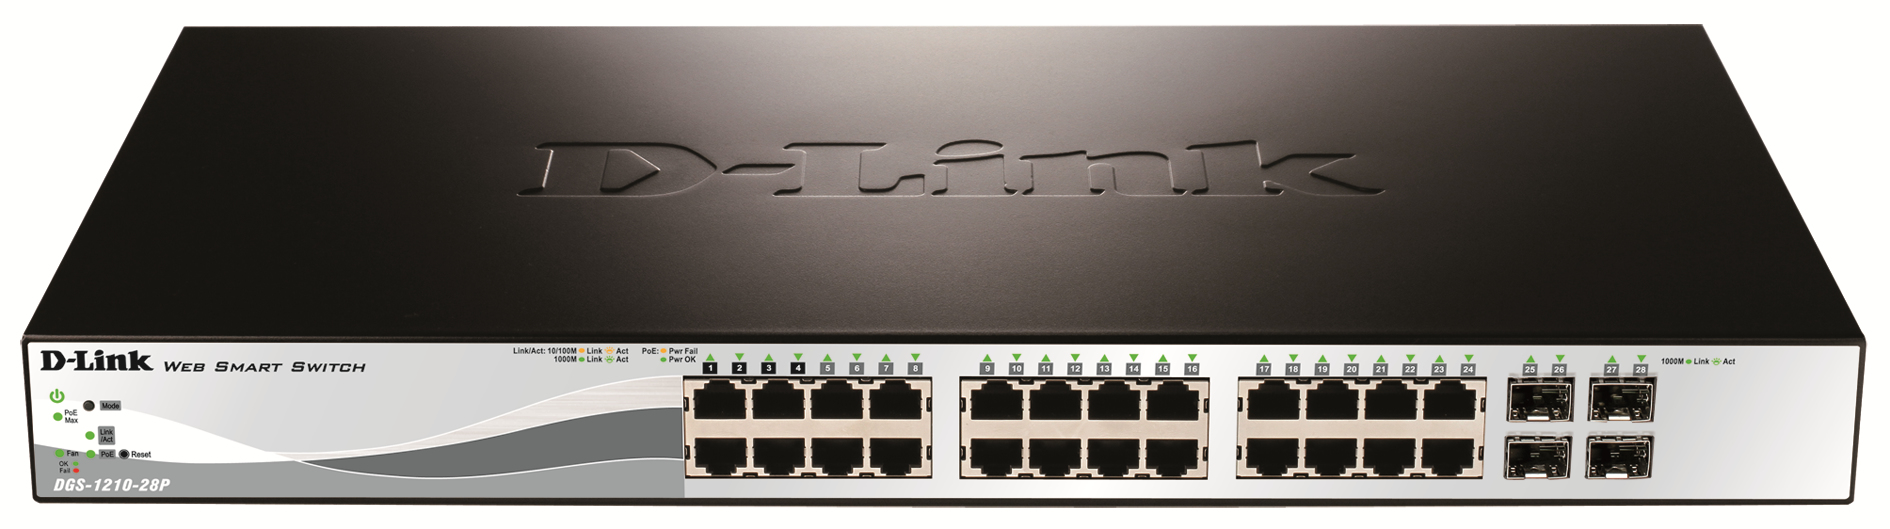 D-Link DGS-1210-28P network switch